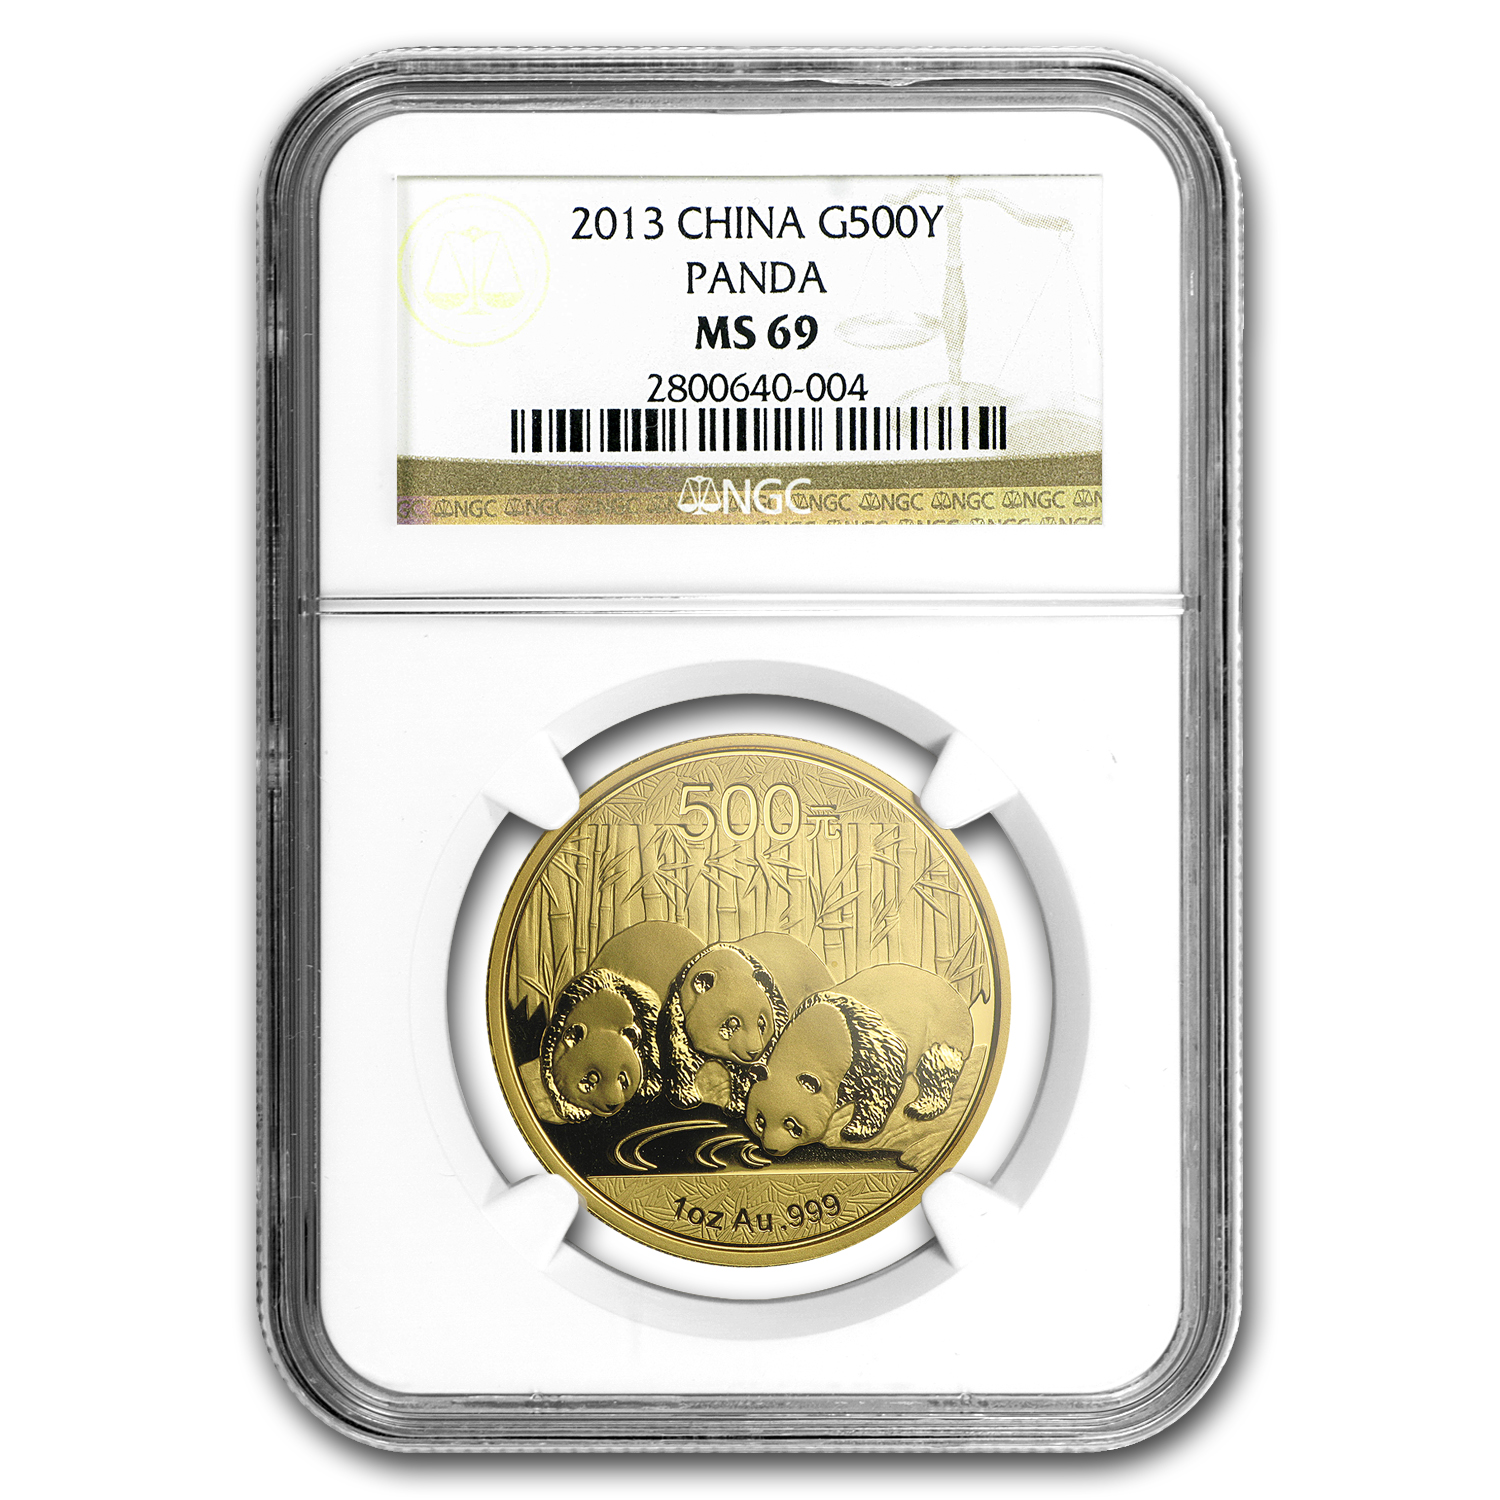 2013 China 1 oz Gold Panda MS-69 NGC